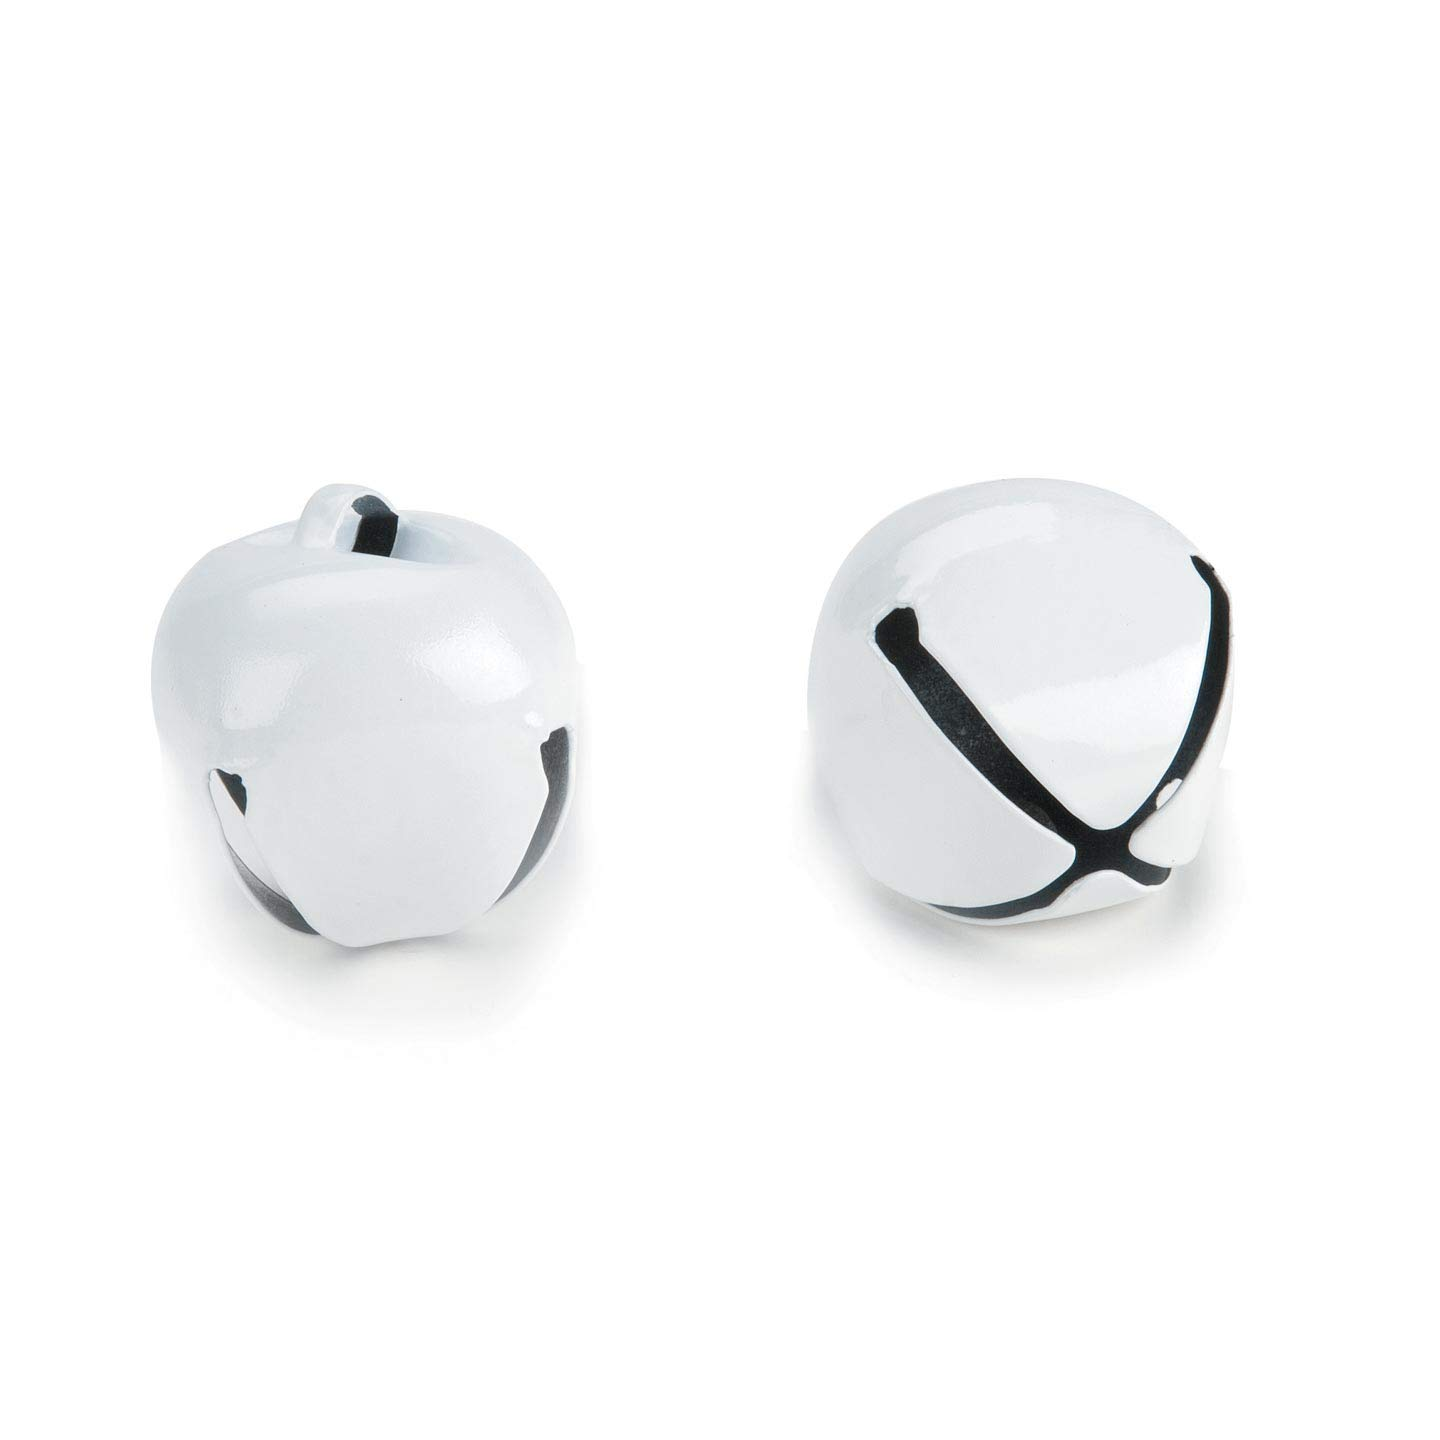 Bulk Buy: Darice DIY Crafts Jingle Bells White 1.5 inches 2 pieces (6-Pack) 1090-32